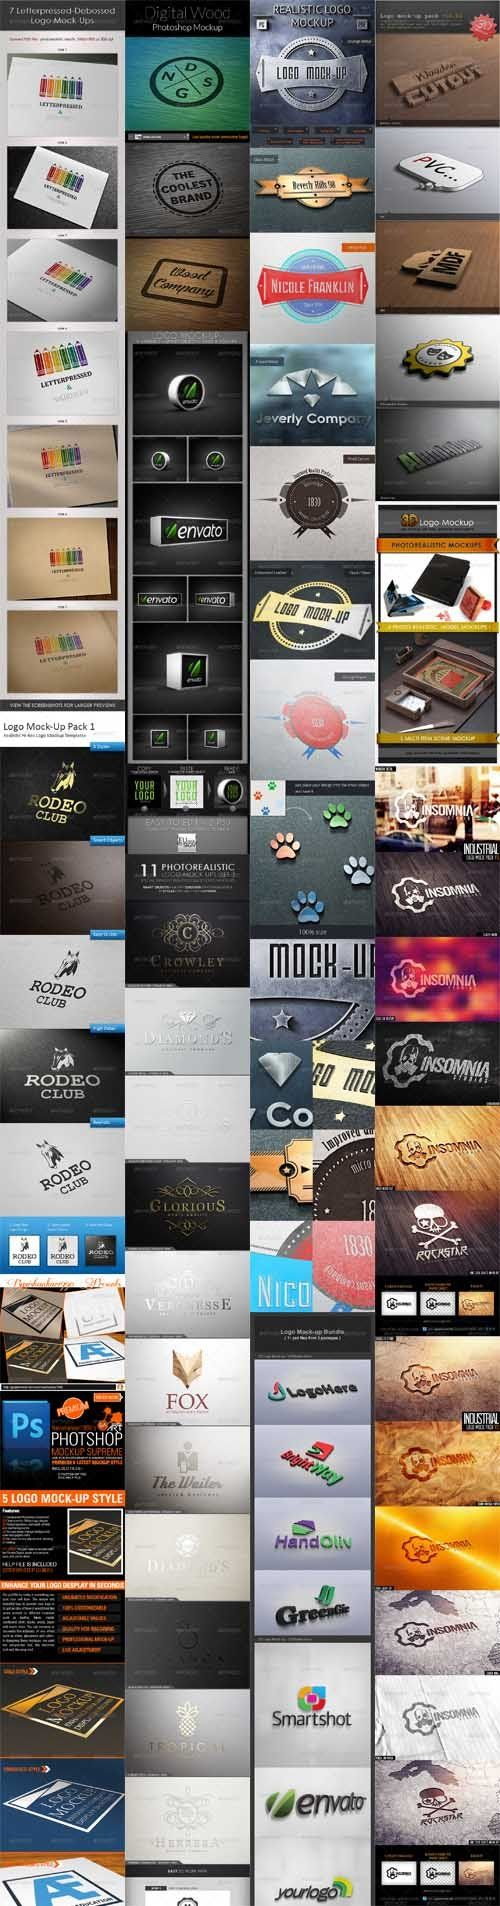 1136 best Moockup.me images on Pinterest | Miniatures, Mockup and Model